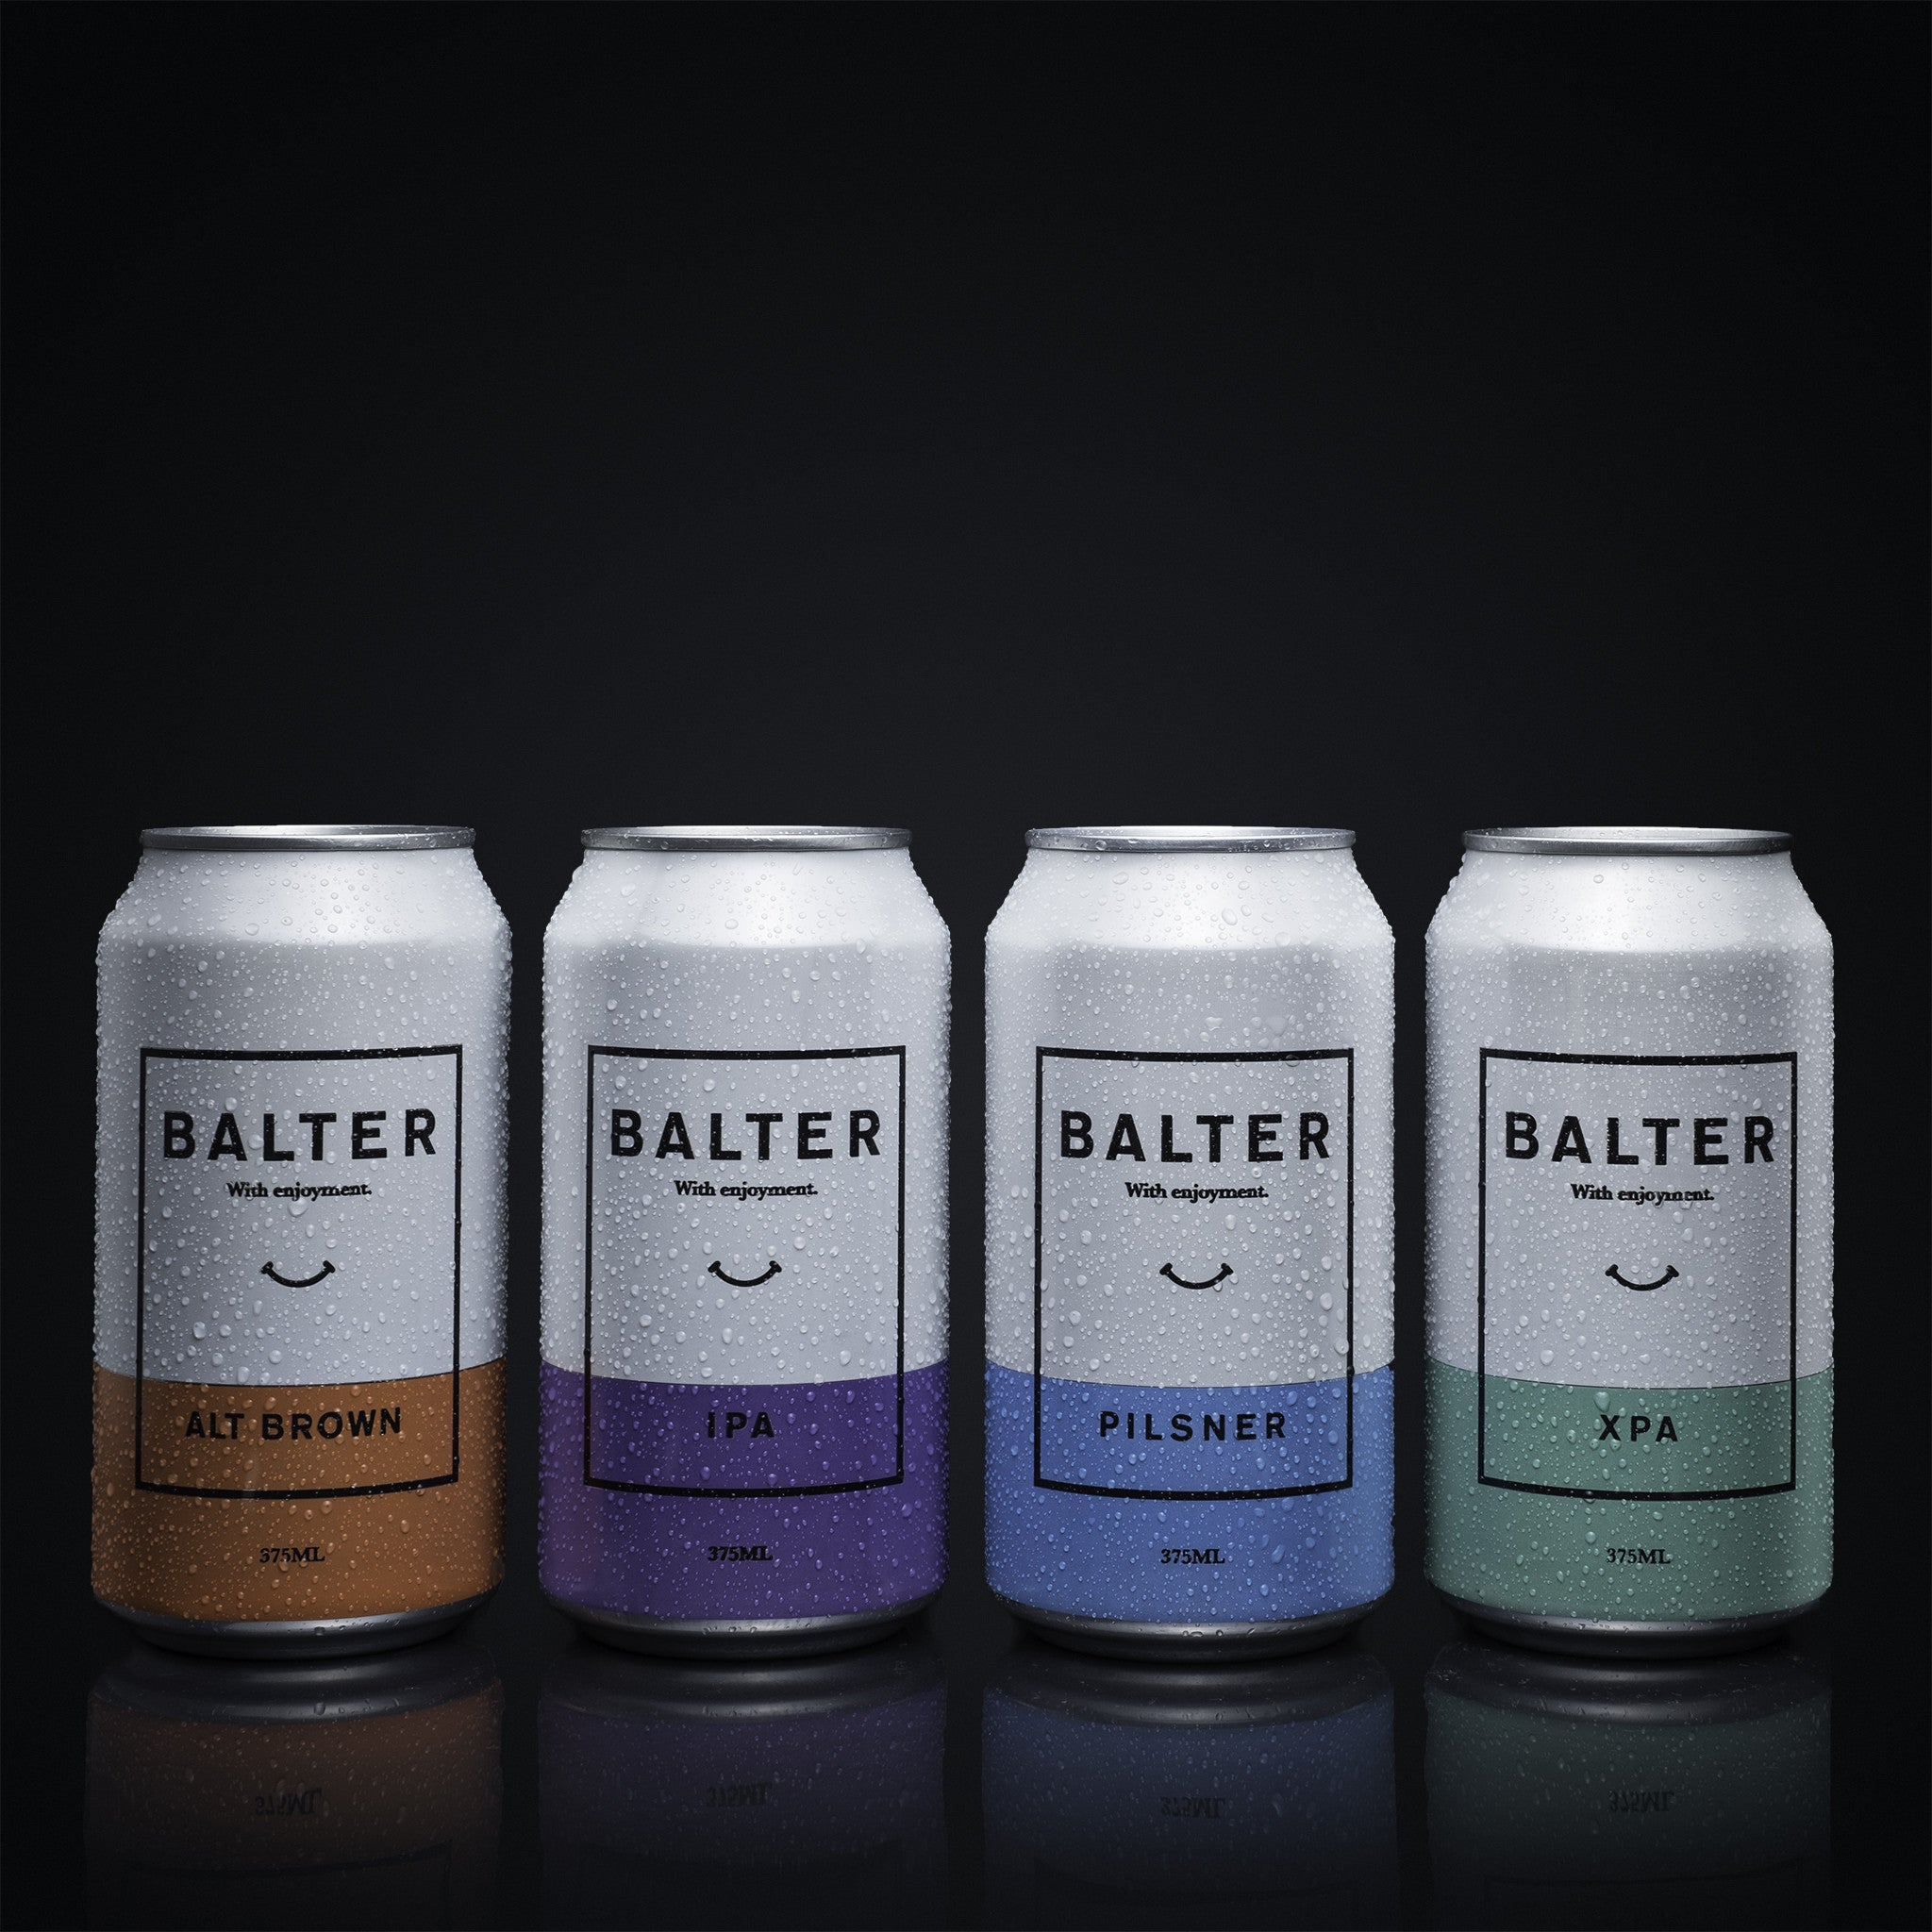 Manflower-co-beer-delivered-gifts-for-him-balter